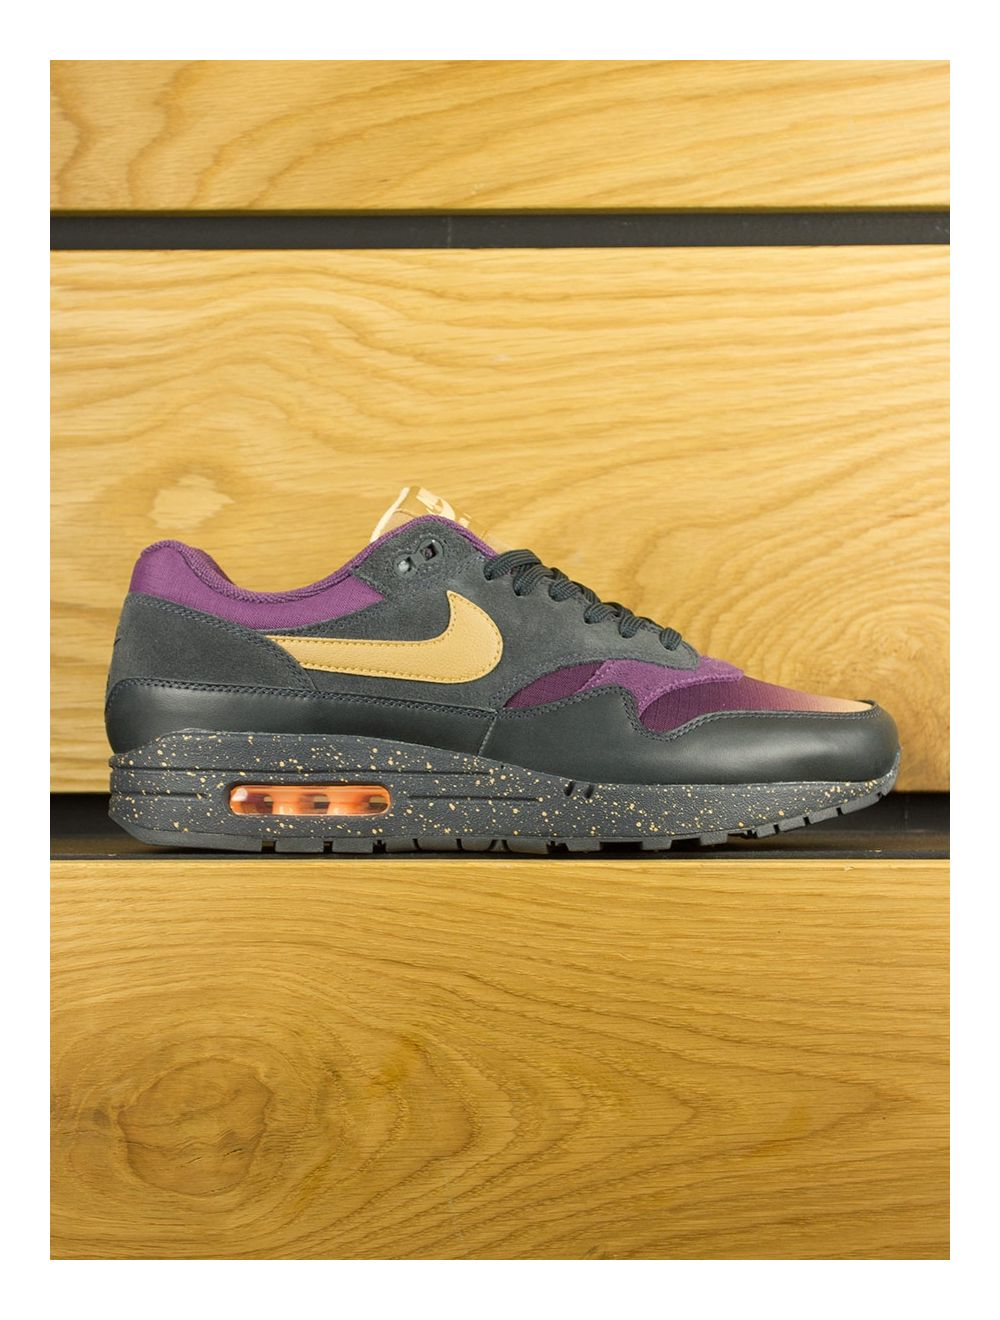 Nike Air Max 1 Premium 'Fade' Anthracite Elemental Gold